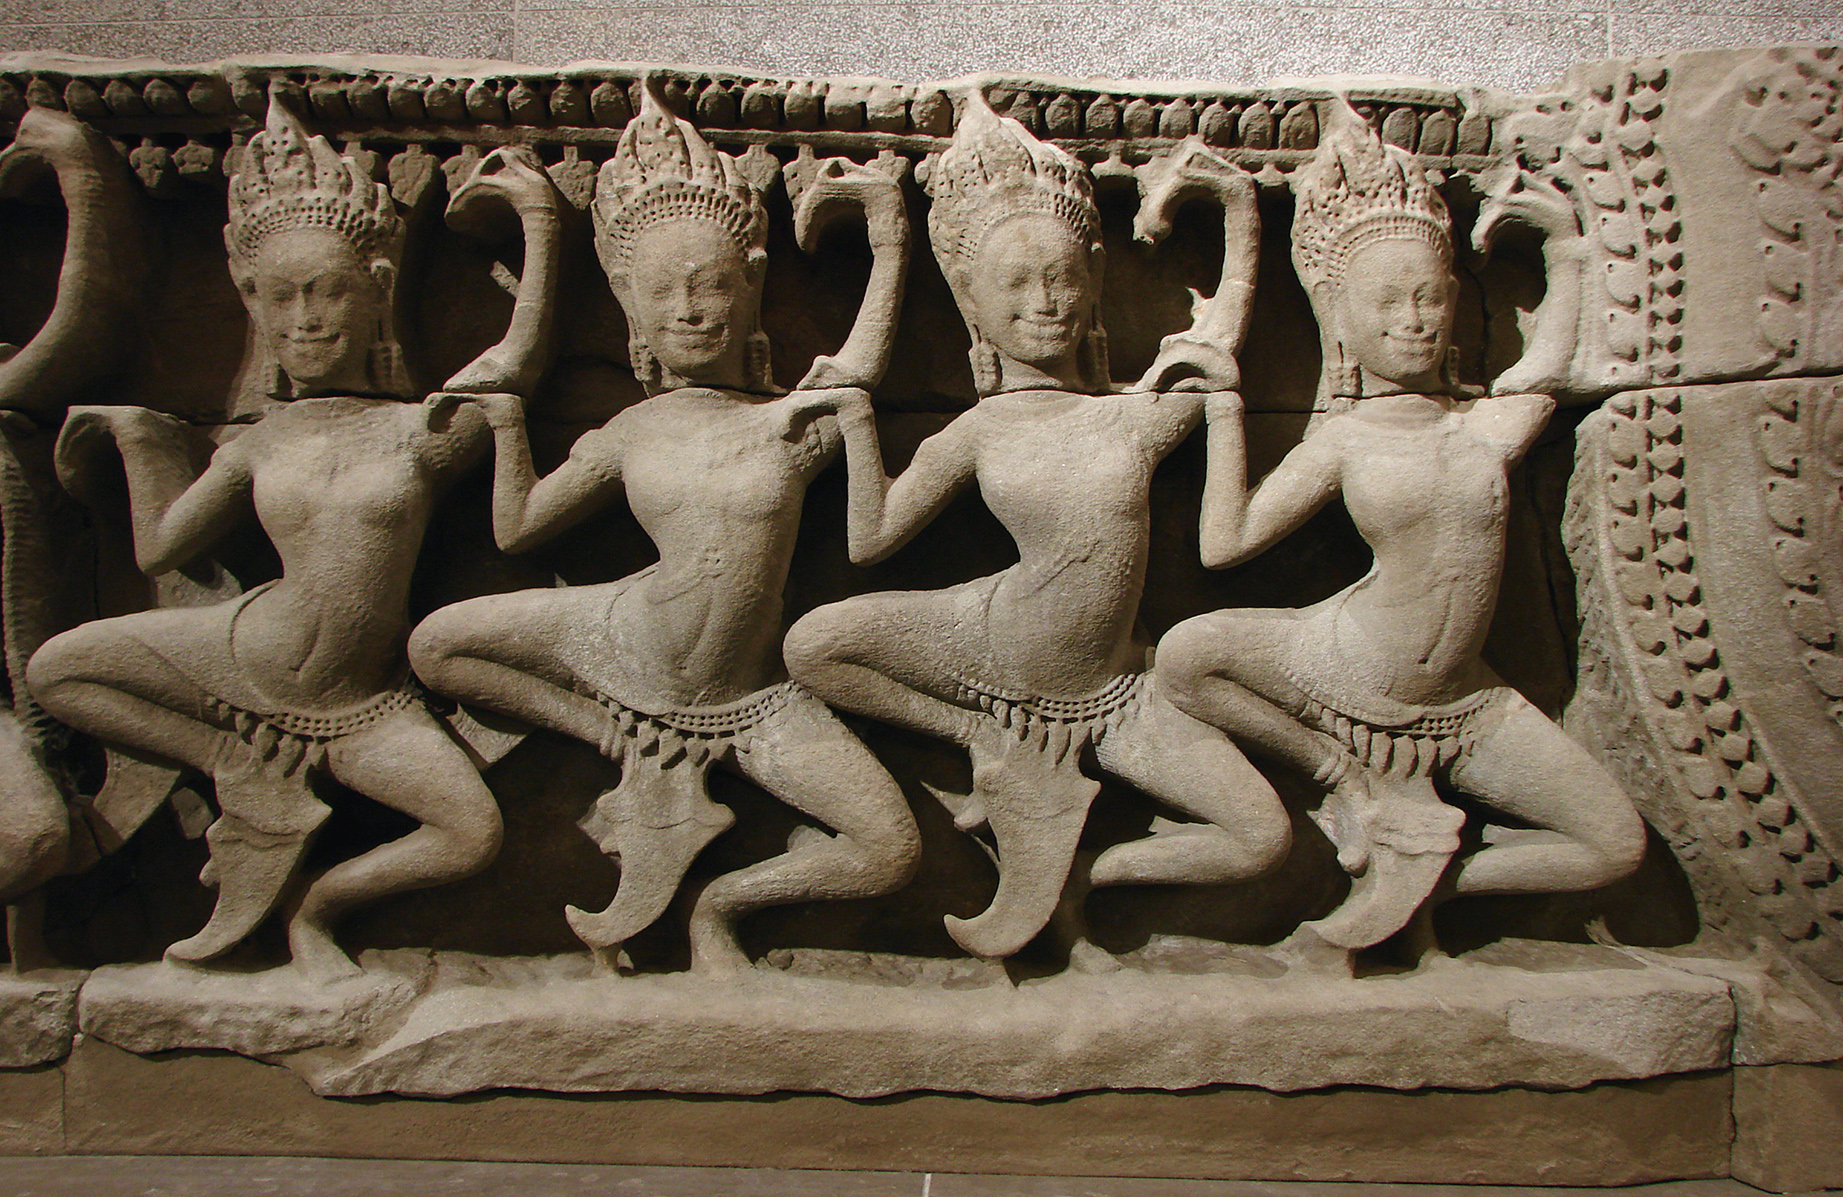 Apsaras dance depicted on the lower part of the pediment in the 12th-century Bayon temple at Angkor Thom in,Siemreap Province, Cambodia. Photo taken on September 23, 2007.